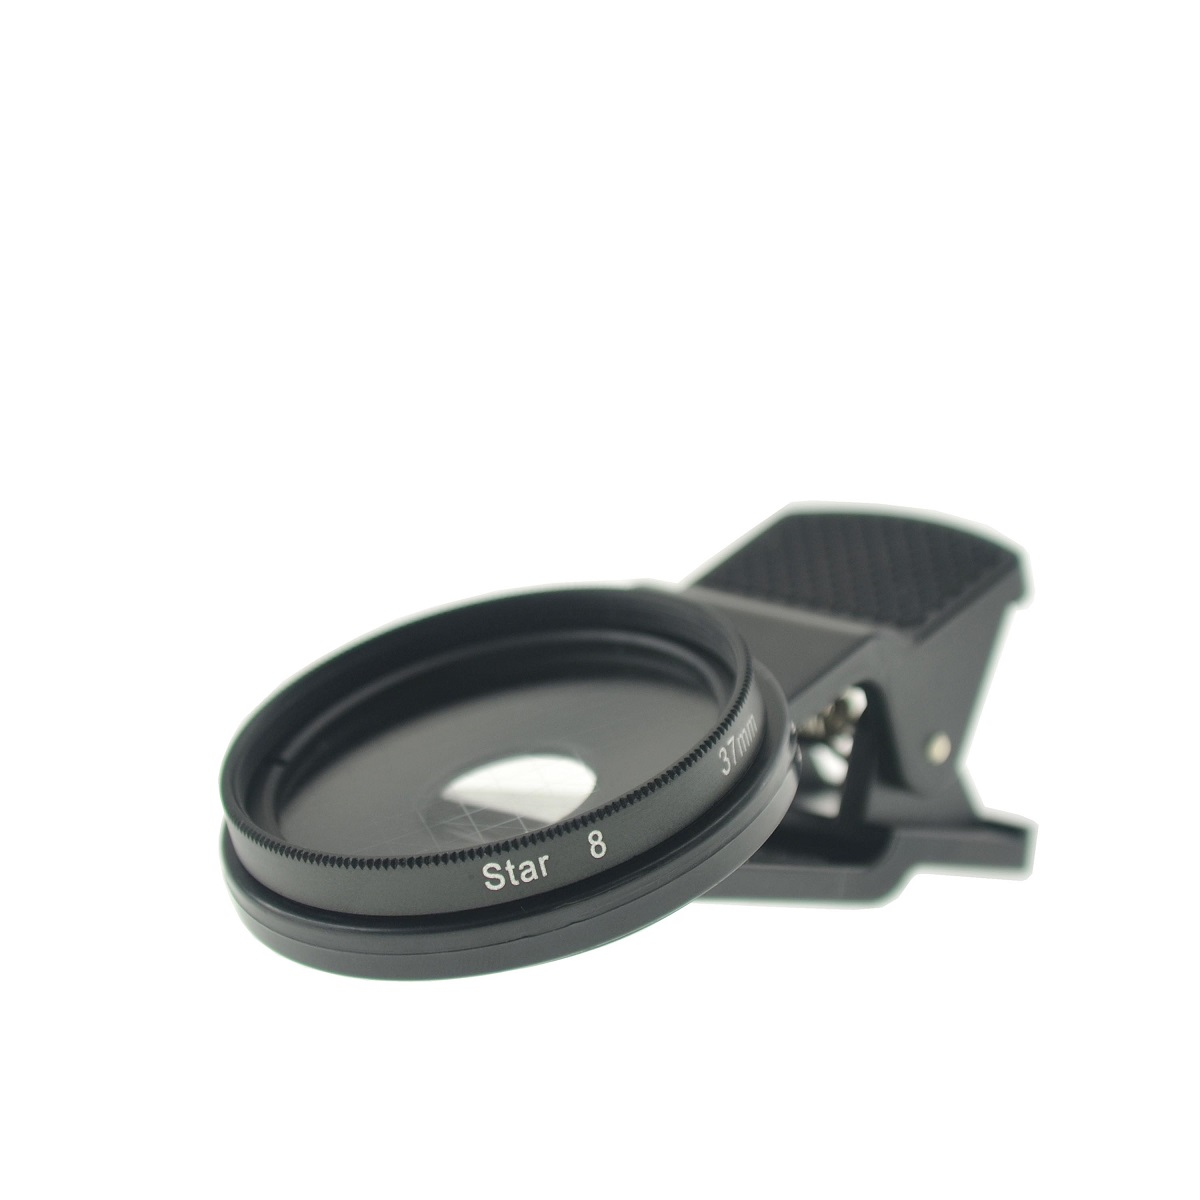 Cloth-Clip Pro 37mm Thread Cross Star Effect Filter Lens (8 Points) for iPhone / Cell Phones